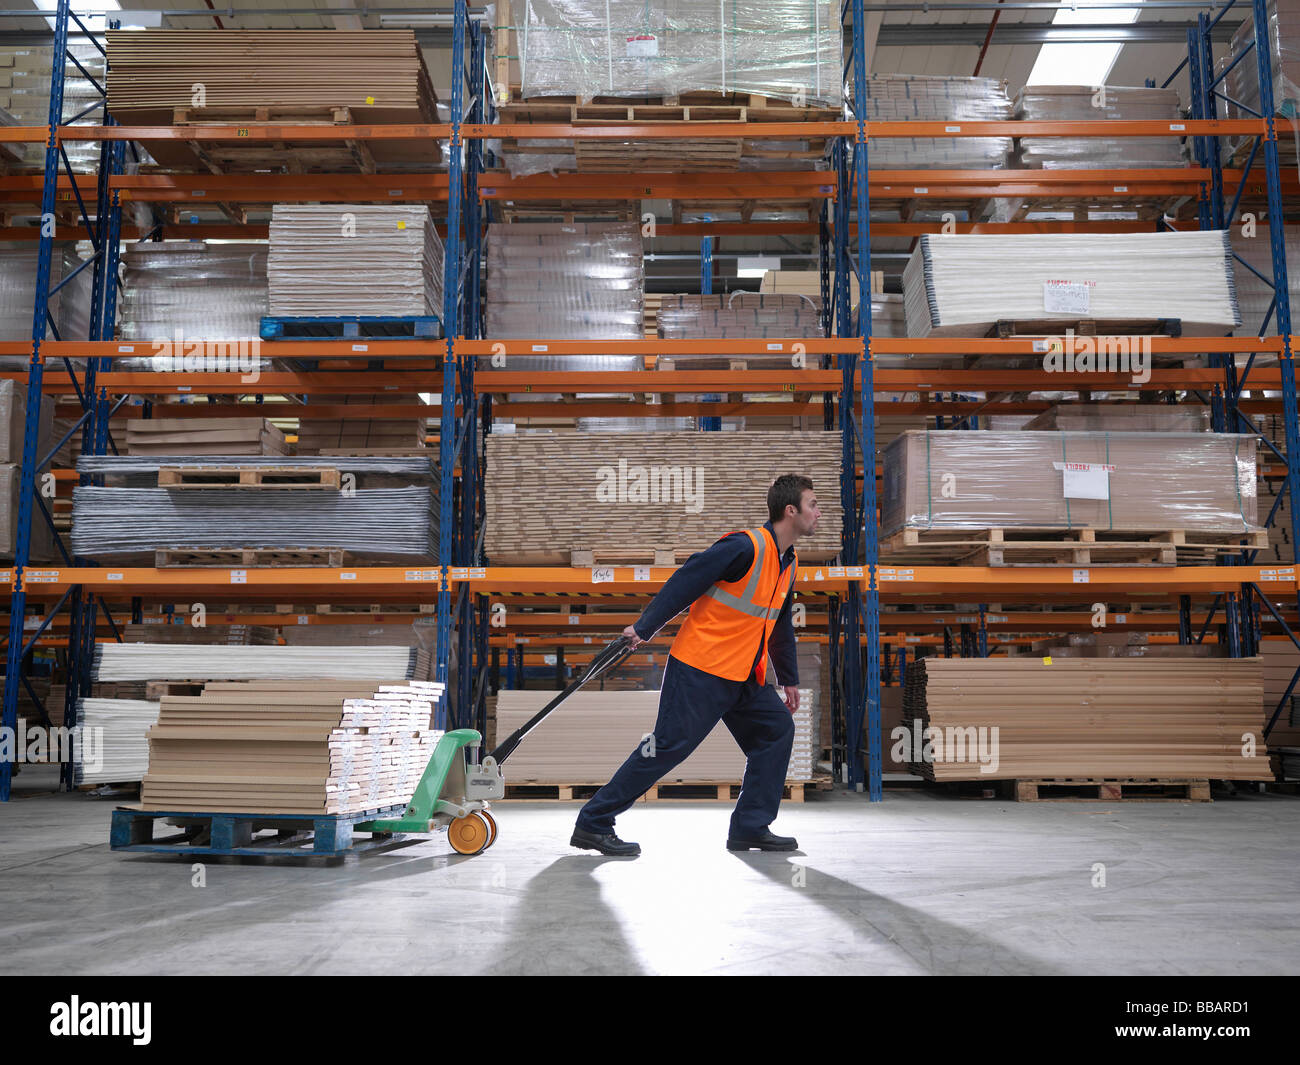 Worker Transporting Product In Warehouse - Stock Image